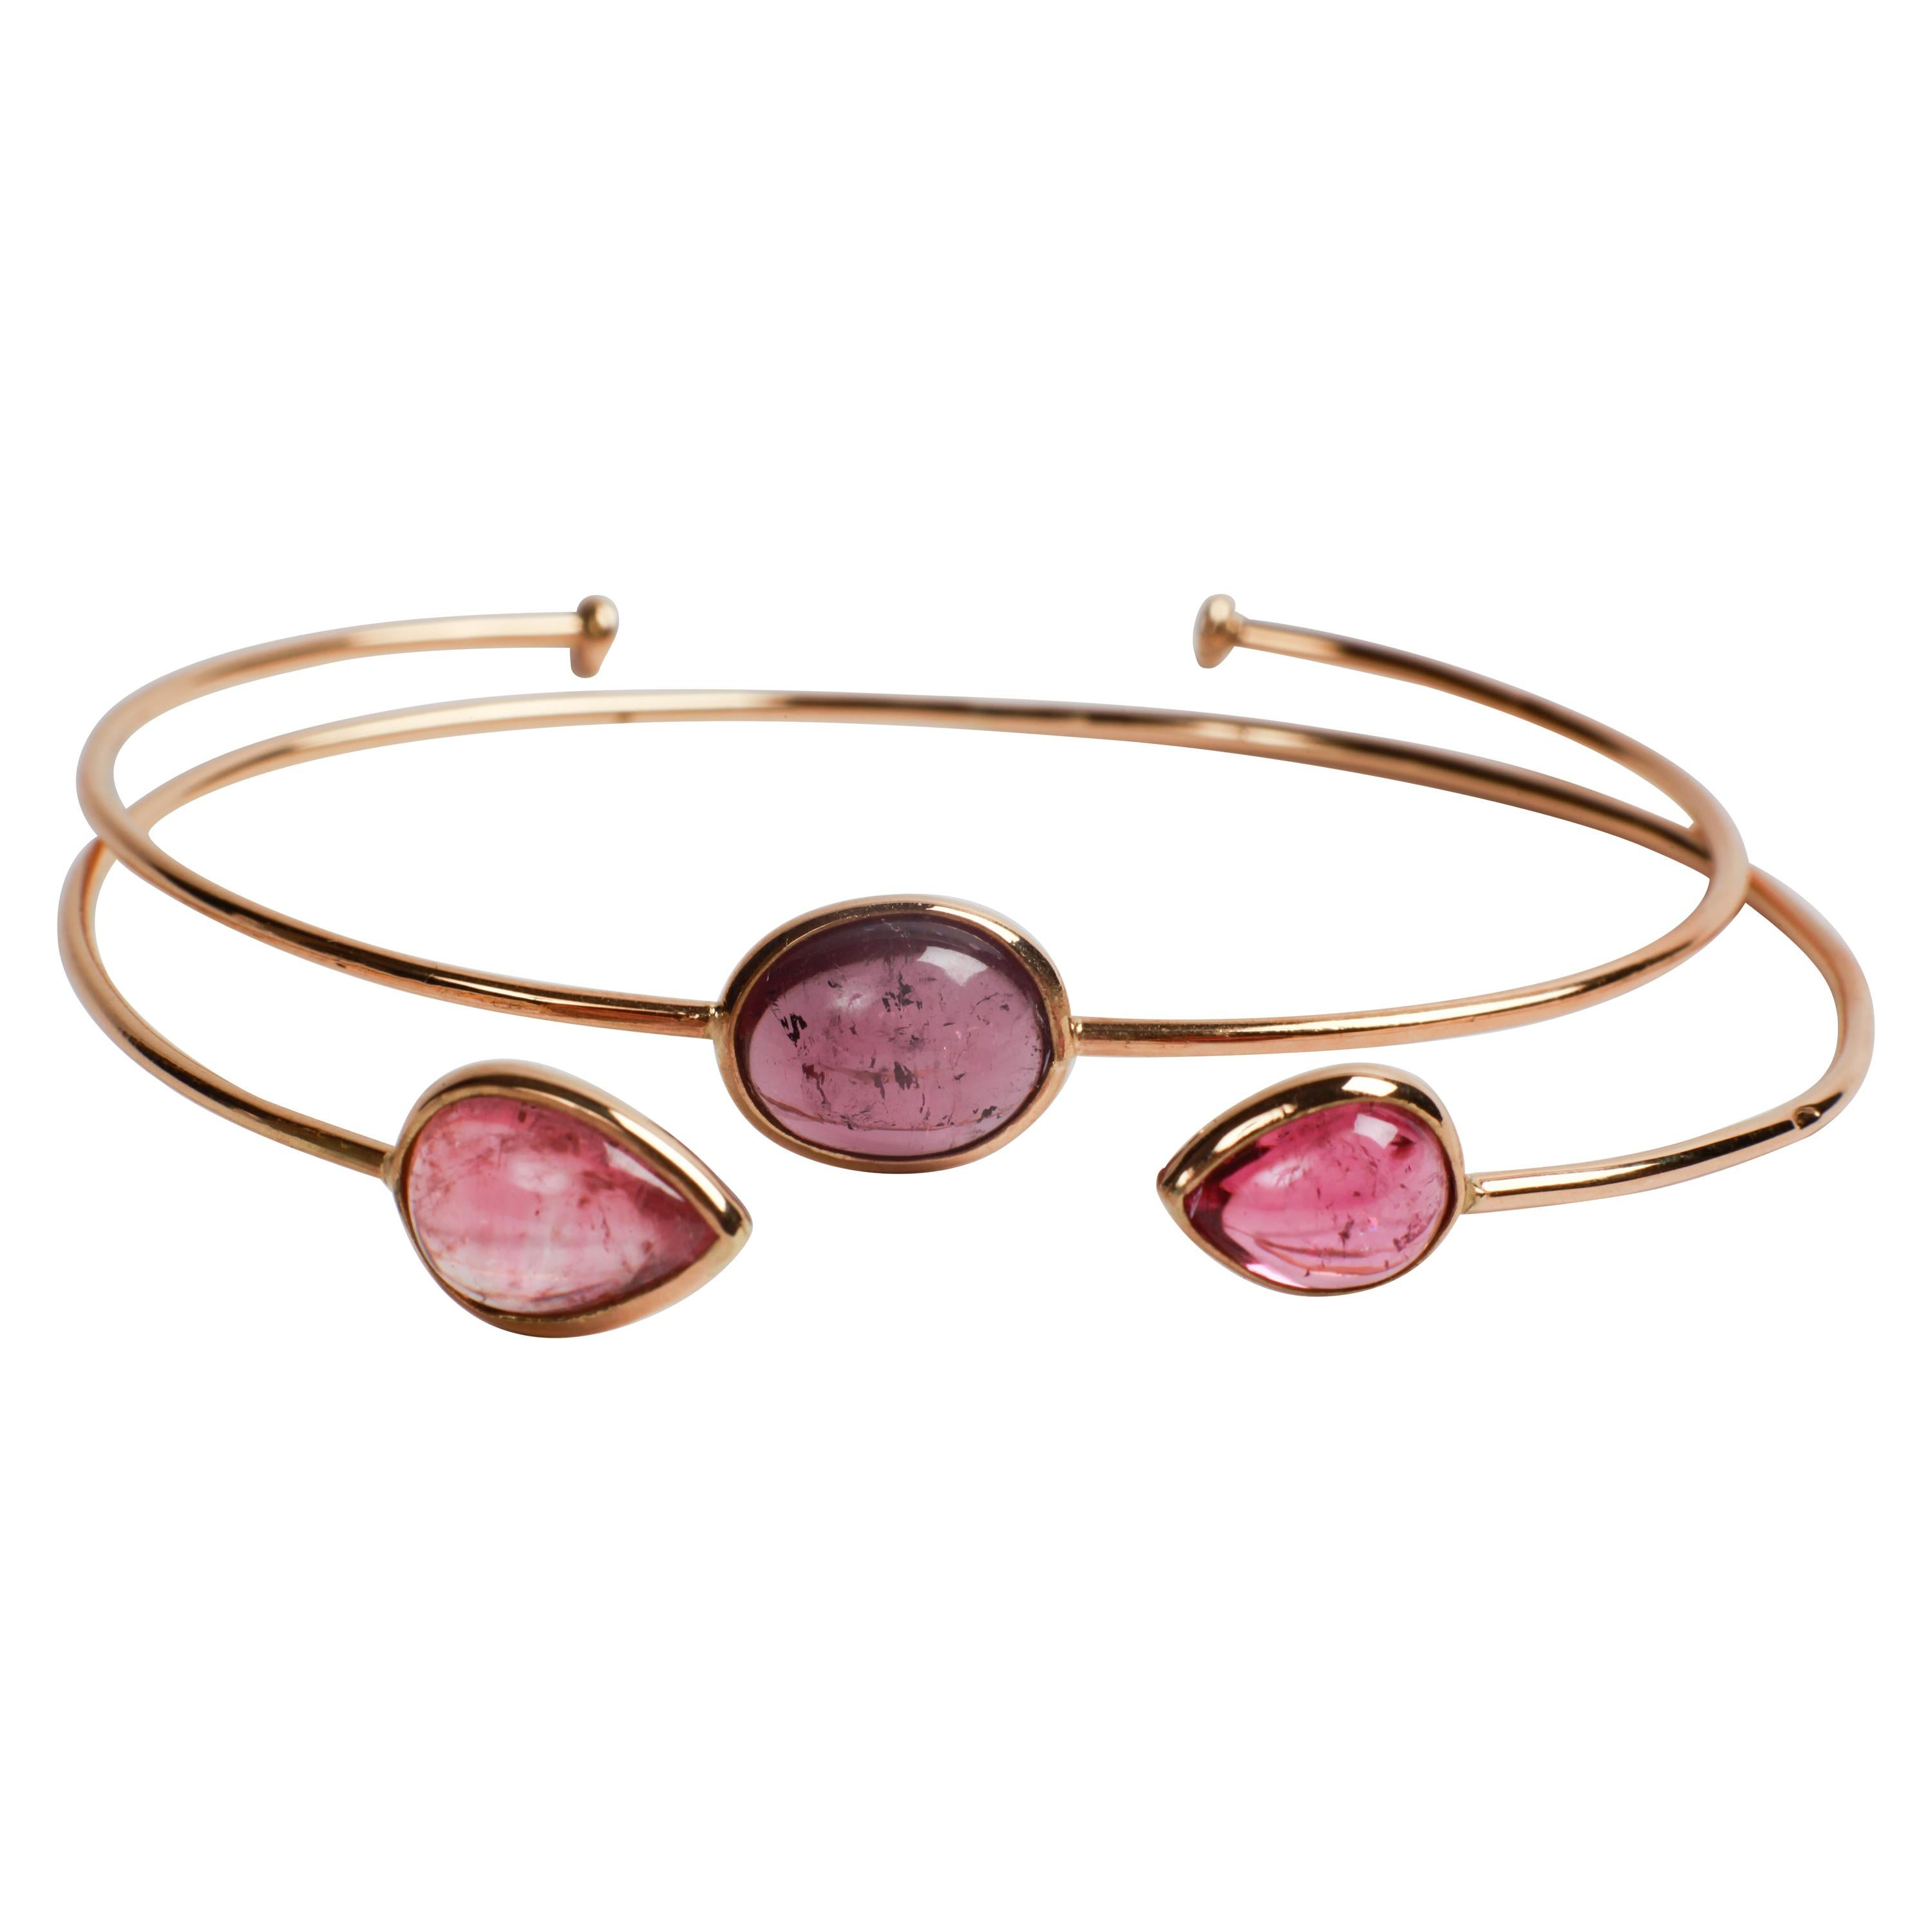 Two Tourmaline 18K Yellow Gold Bangle Bracelets Created by Marion Jeantet